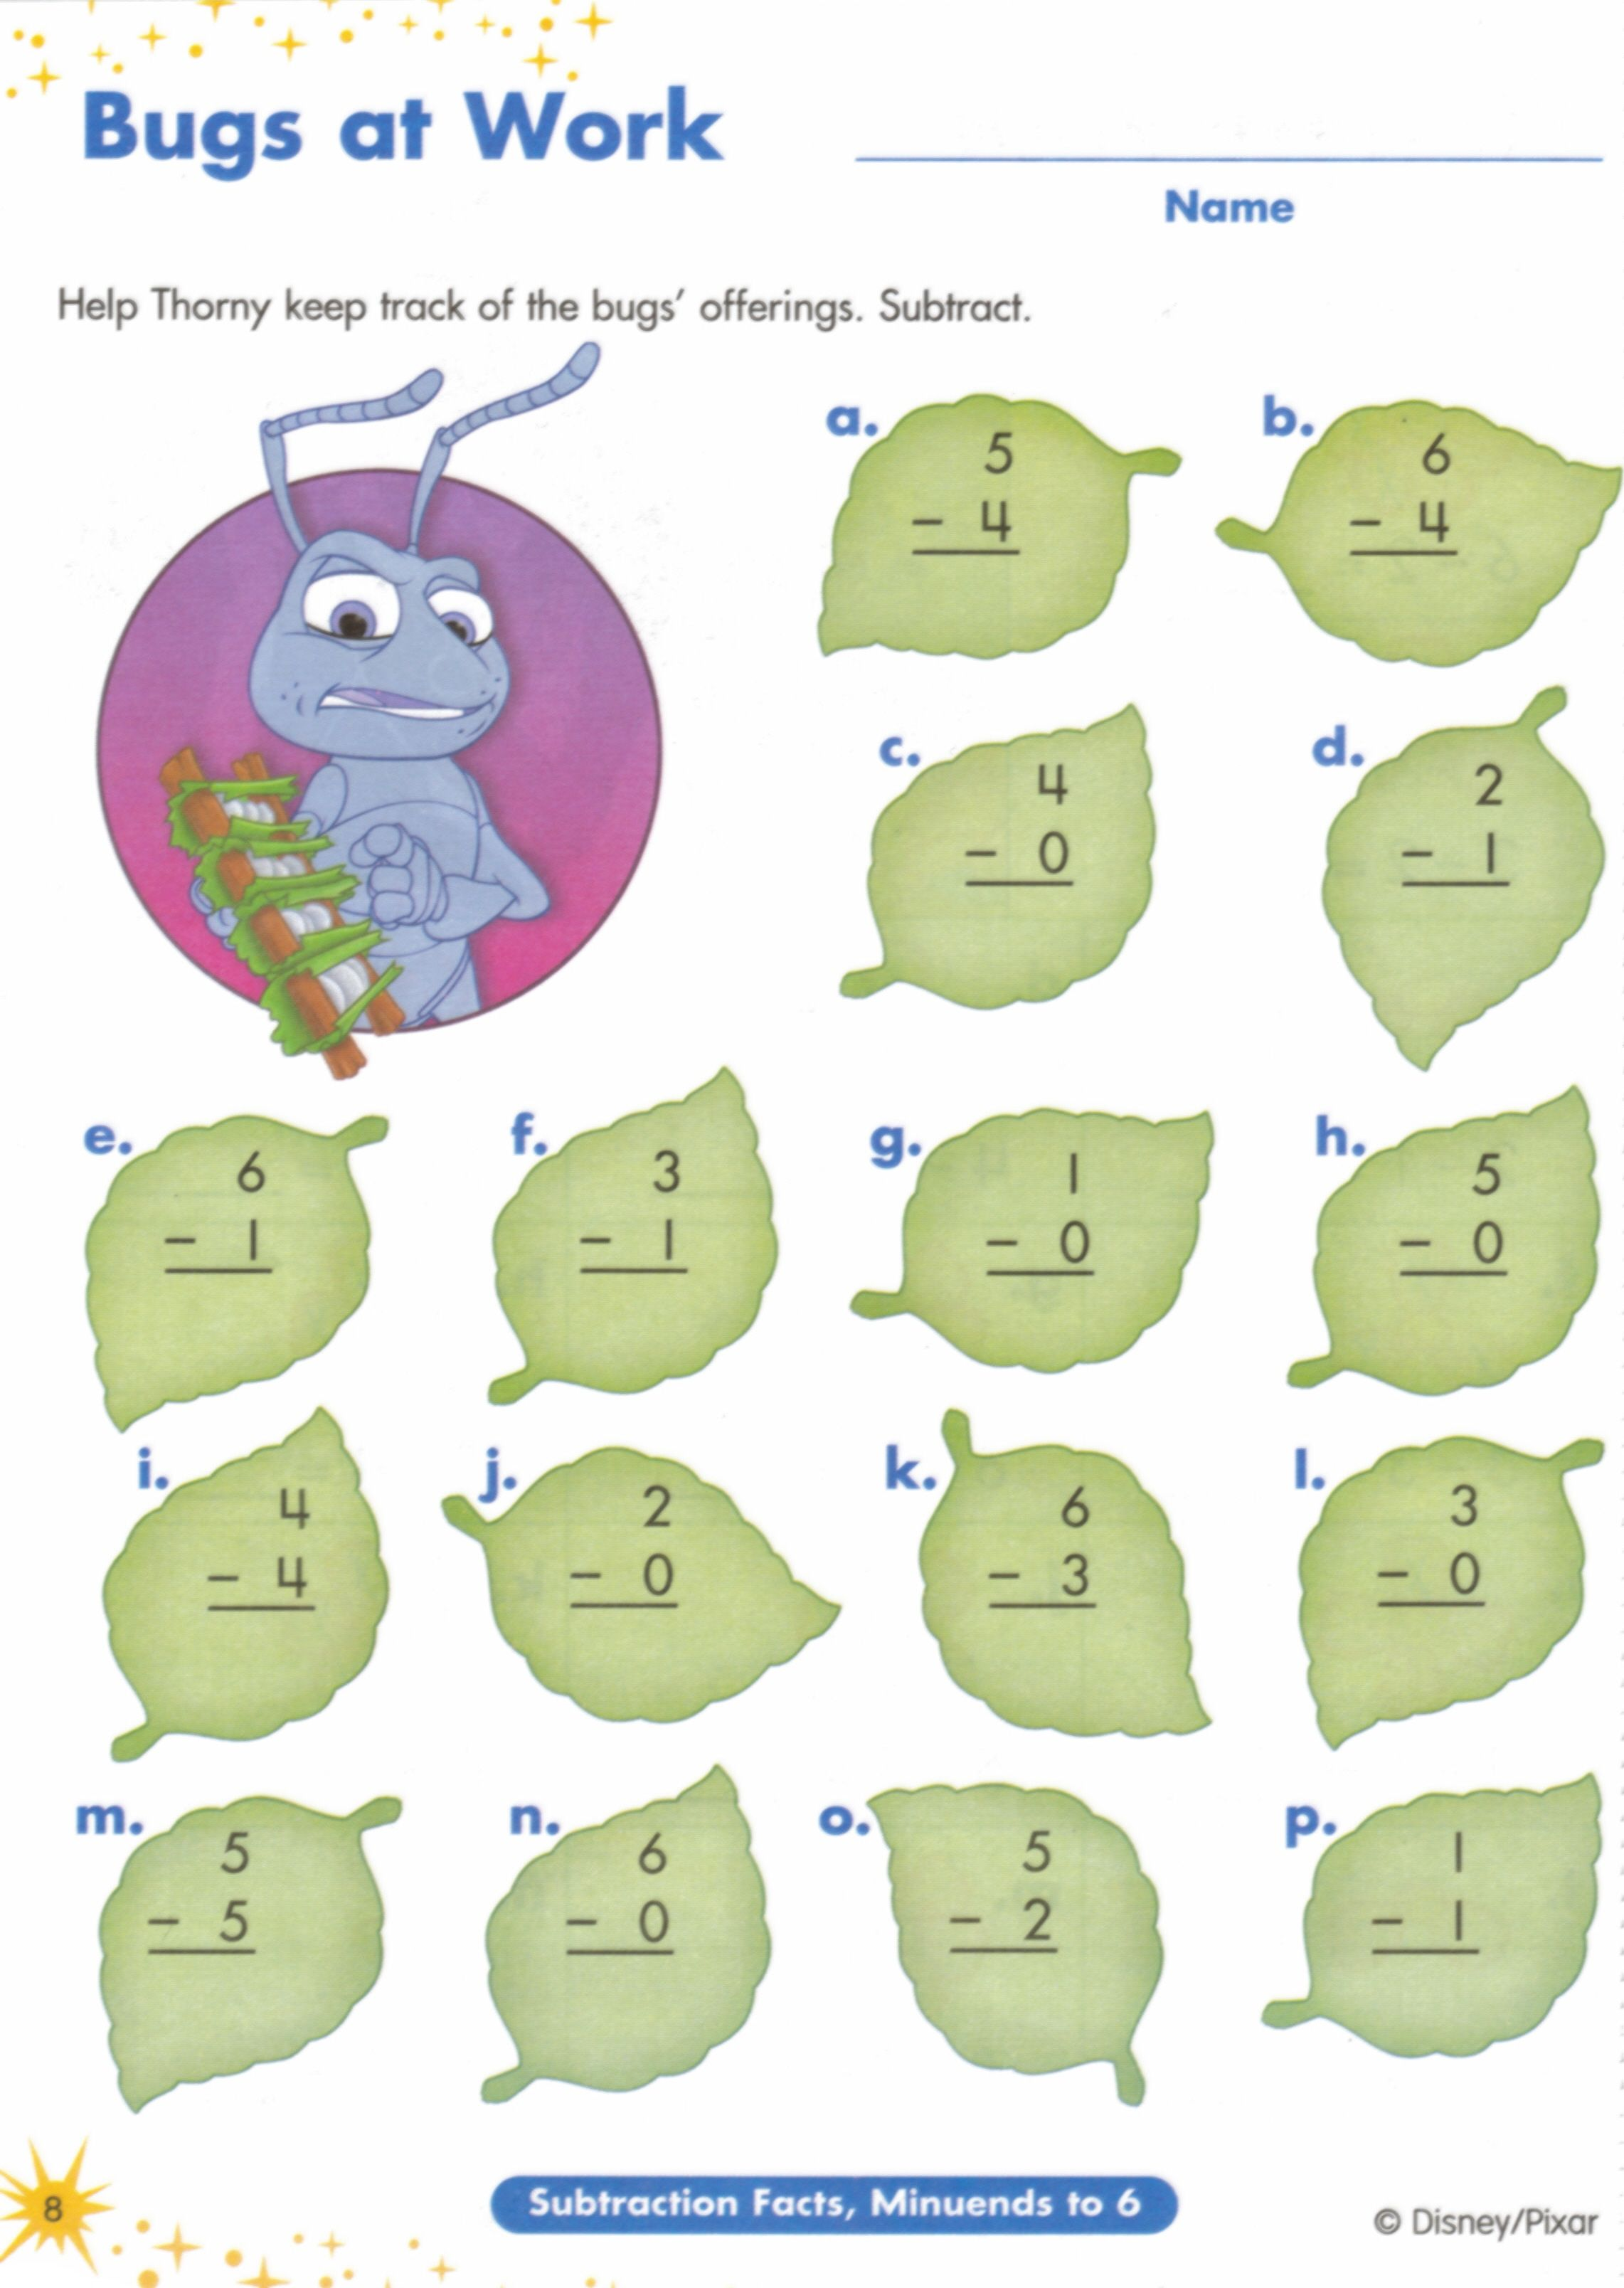 Weirdmailus  Nice  Images About Worksheets On Pinterest  Fun Facts For Kids  With Fair  Images About Worksheets On Pinterest  Fun Facts For Kids Earth Day Worksheets And Jungles With Nice Coin Matching Worksheet Also Simplifying Negative Exponents Worksheet In Addition Algebra  Equations Worksheets And Descriptive Language Worksheets As Well As Point Of View Practice Worksheets Additionally Printable Rhyming Worksheets From Pinterestcom With Weirdmailus  Fair  Images About Worksheets On Pinterest  Fun Facts For Kids  With Nice  Images About Worksheets On Pinterest  Fun Facts For Kids Earth Day Worksheets And Jungles And Nice Coin Matching Worksheet Also Simplifying Negative Exponents Worksheet In Addition Algebra  Equations Worksheets From Pinterestcom